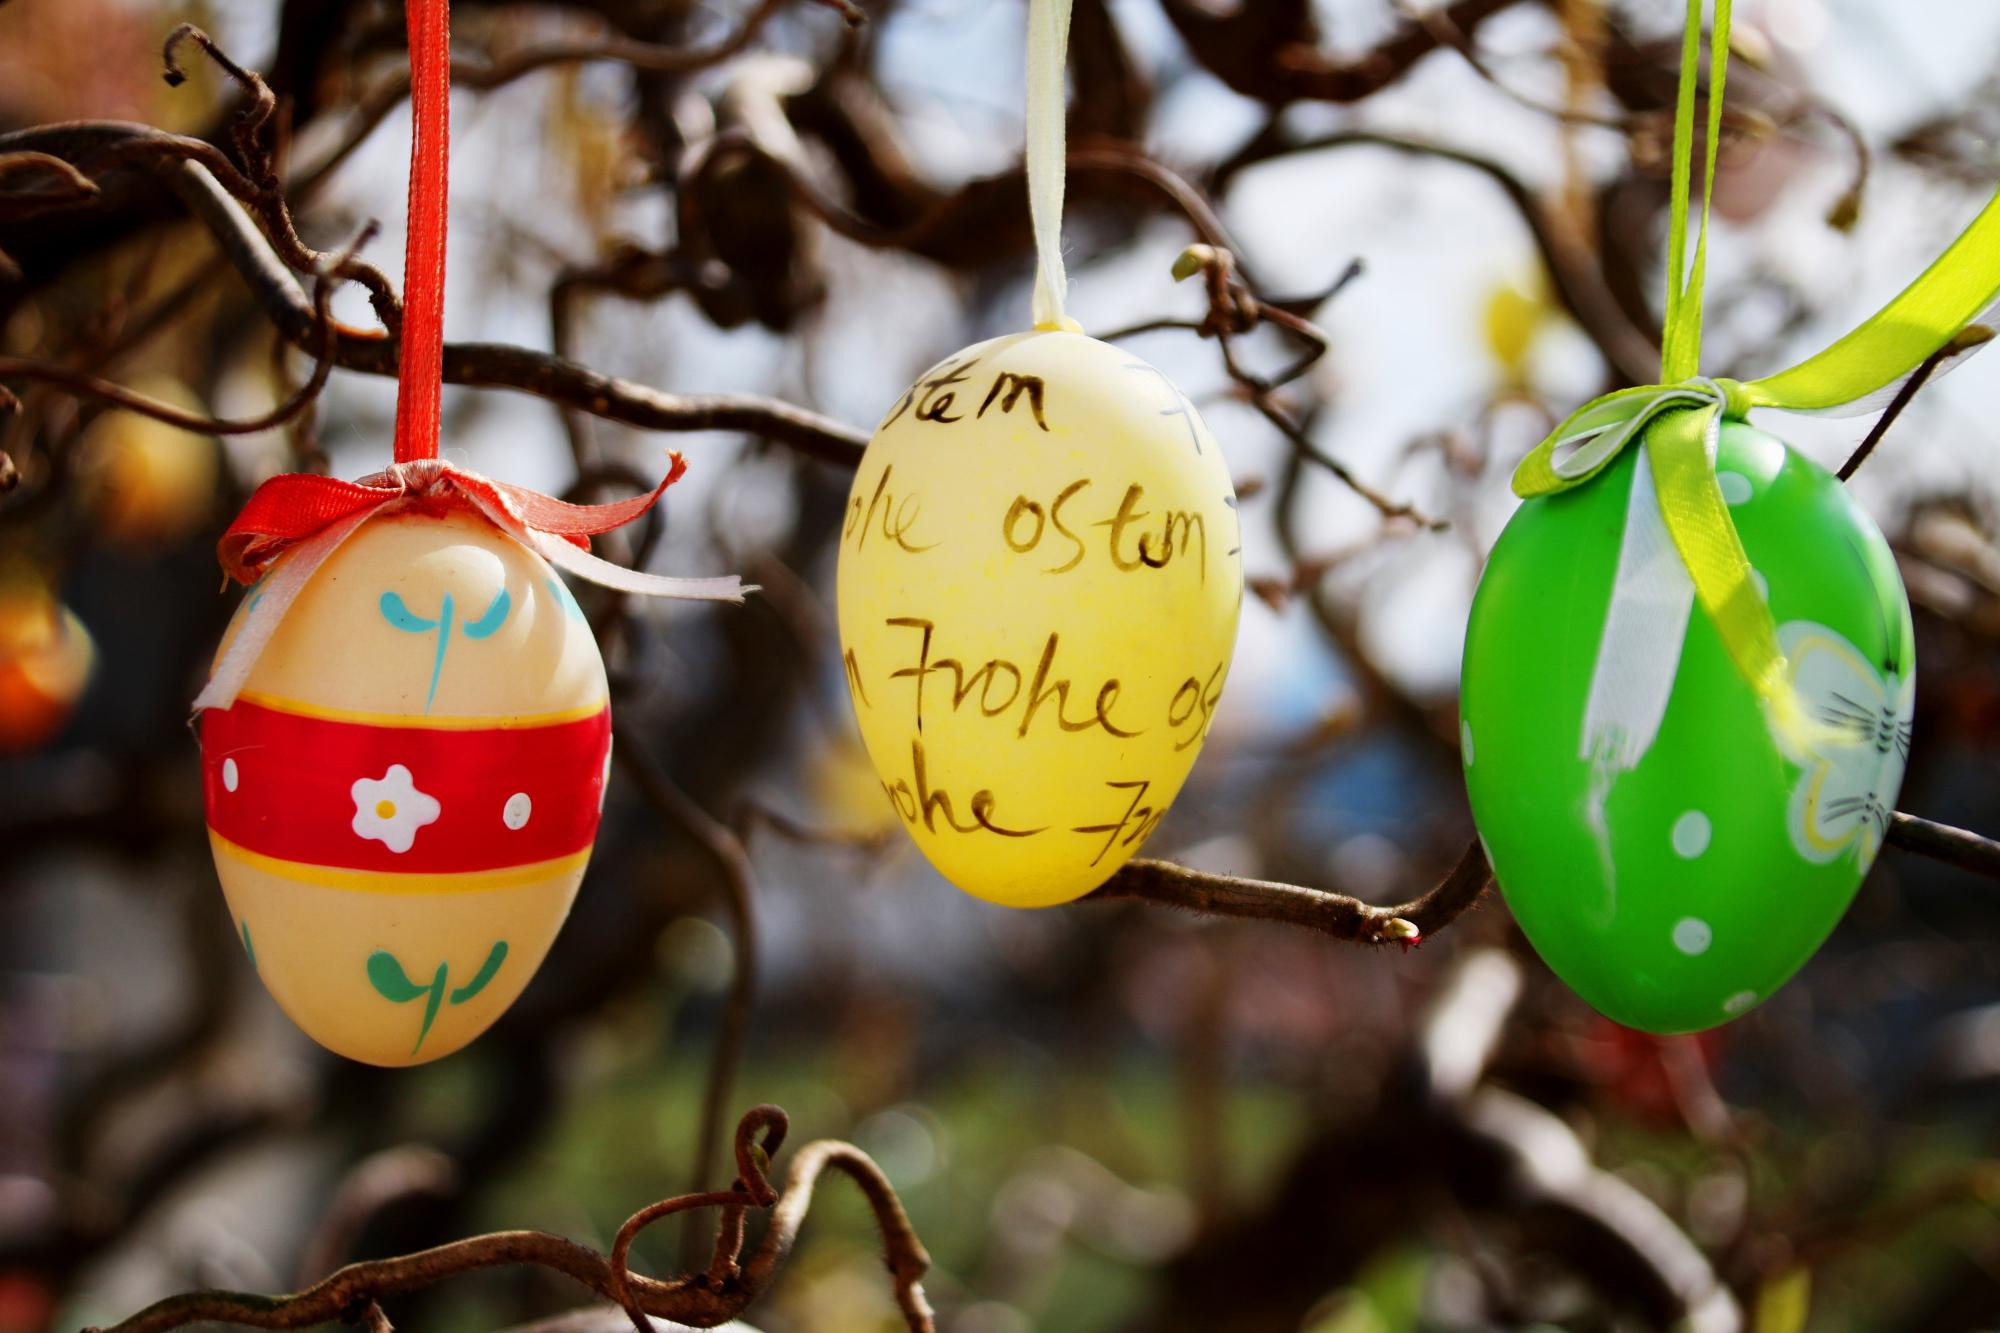 frohe-ostern_by_Christiane_Raabe_pfarrbriefservice (c) Copyrightfrei